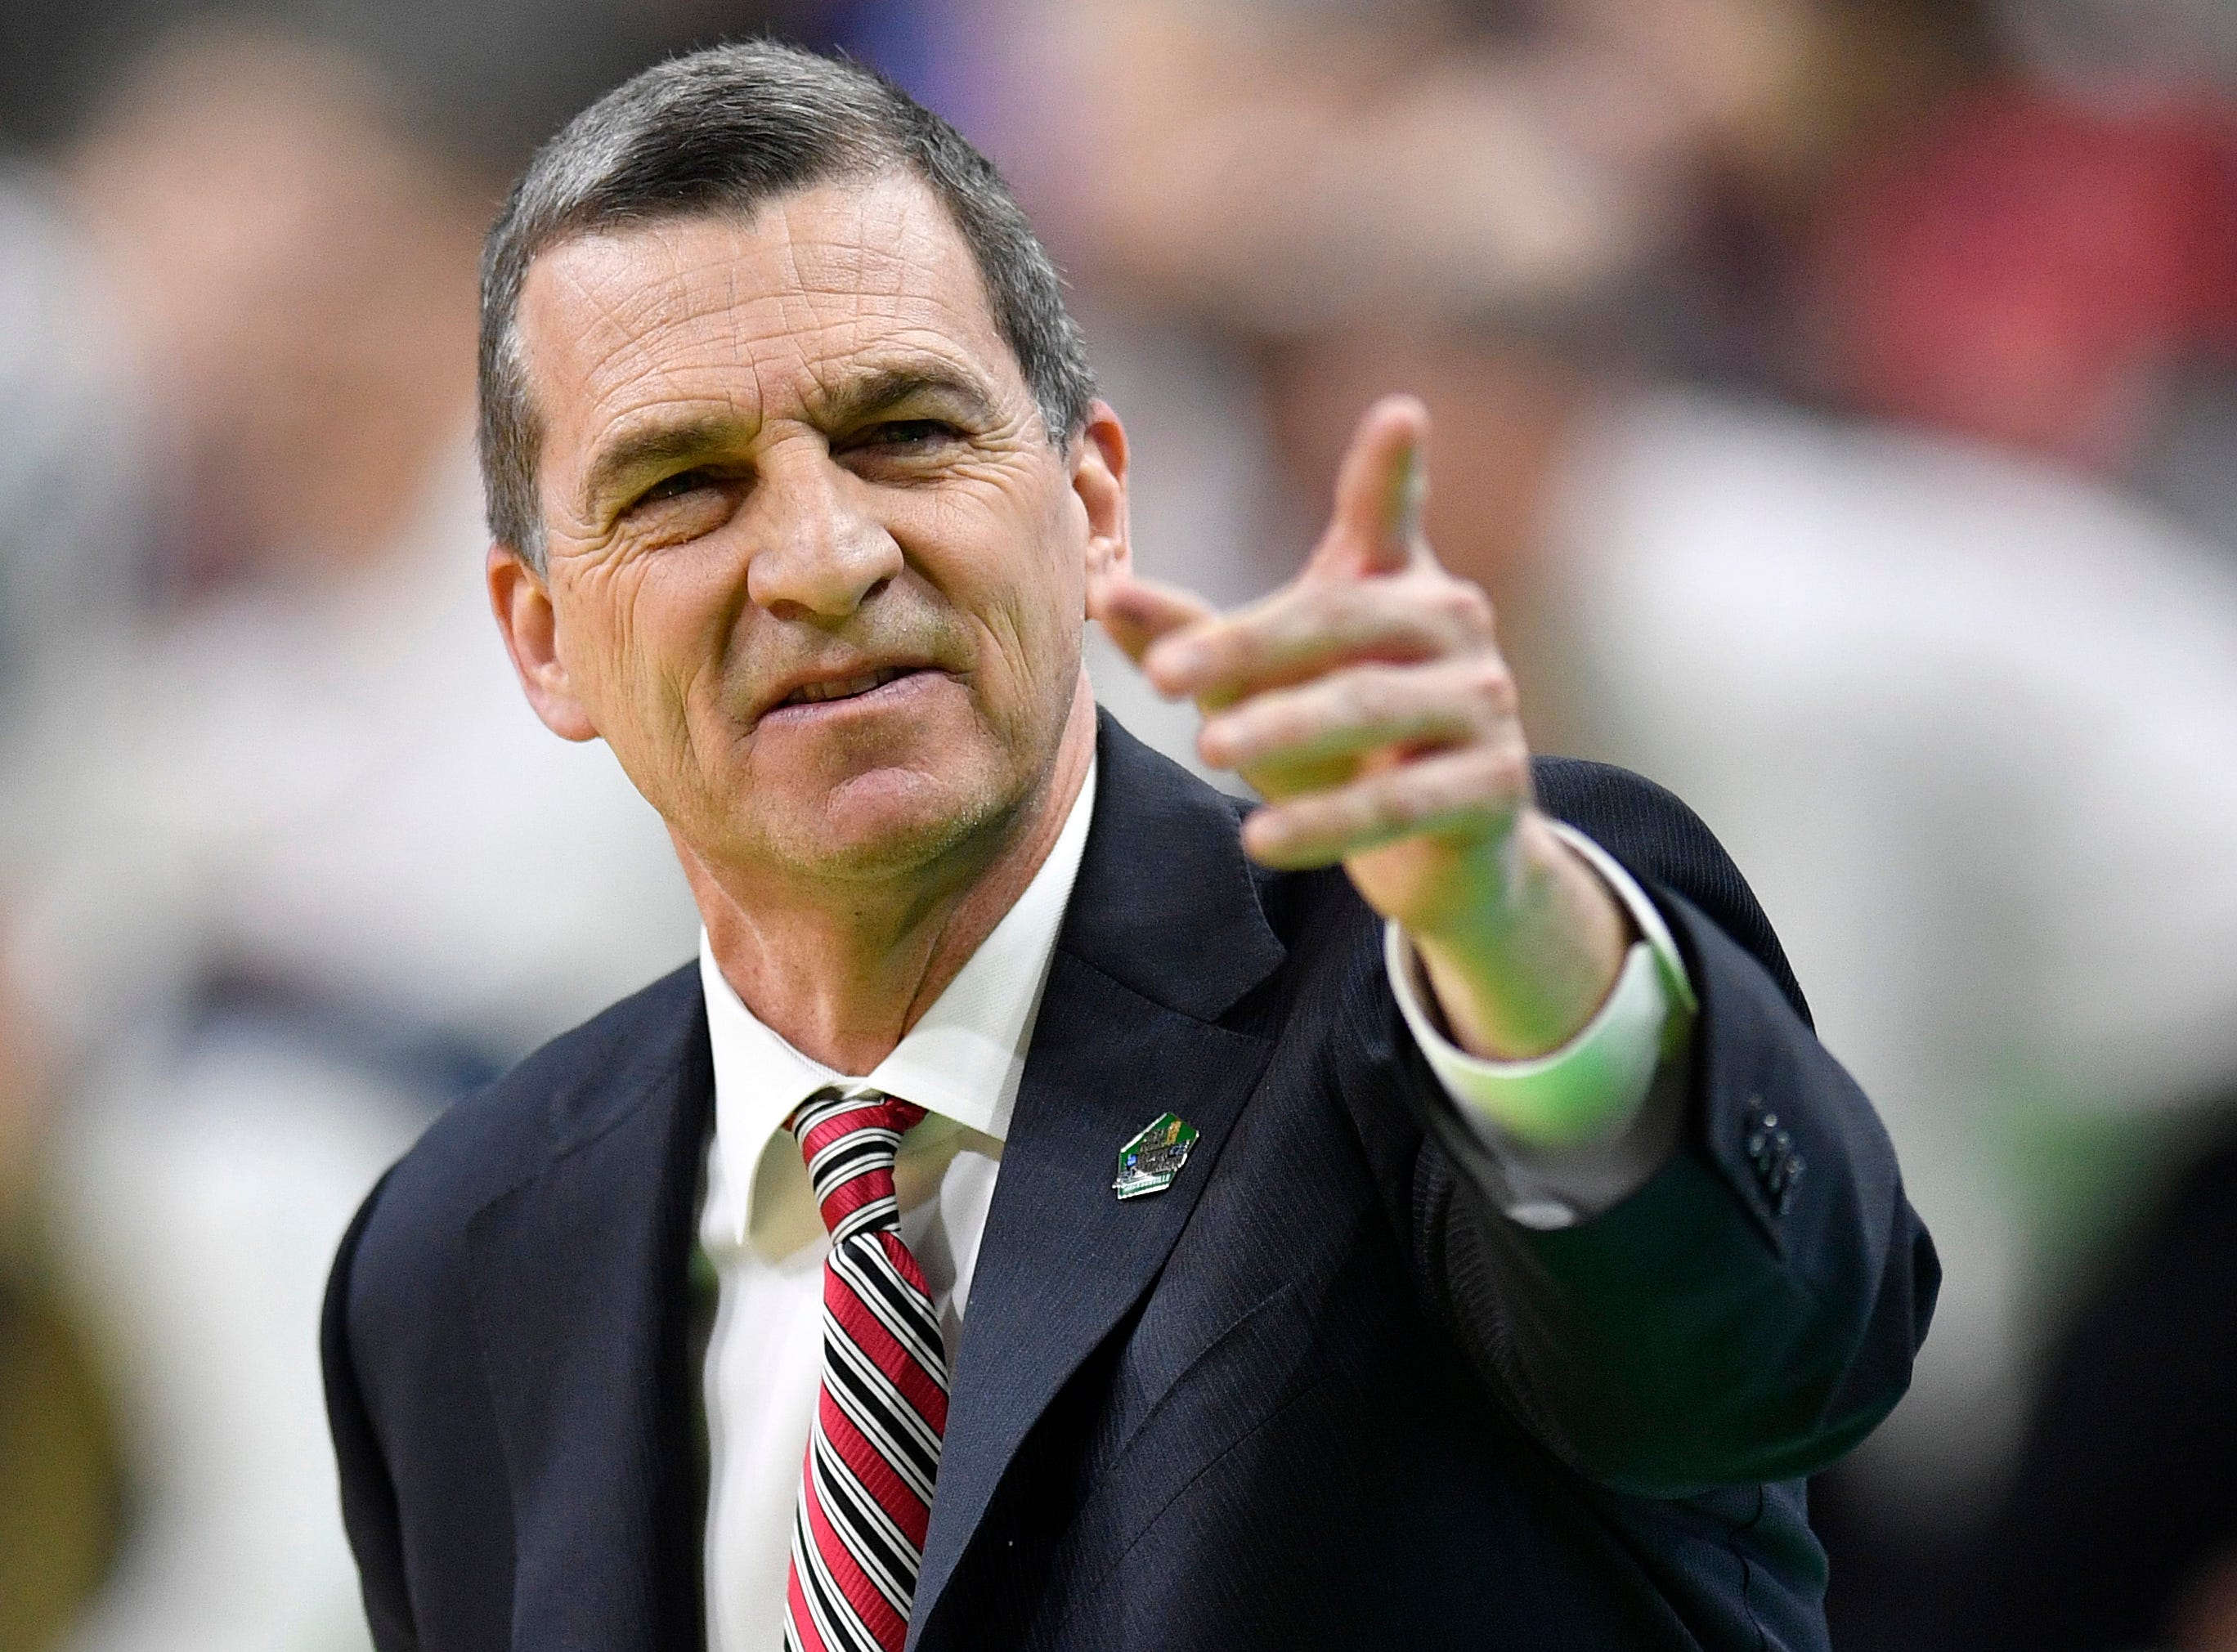 Maryland head coach Mark Turgeon directs his team during the first half of the first-round NCAA college basketball tournament game against Belmont at VyStar Veterans Memorial Arena in Jacksonville, Fla., Thursday, March 21, 2019.